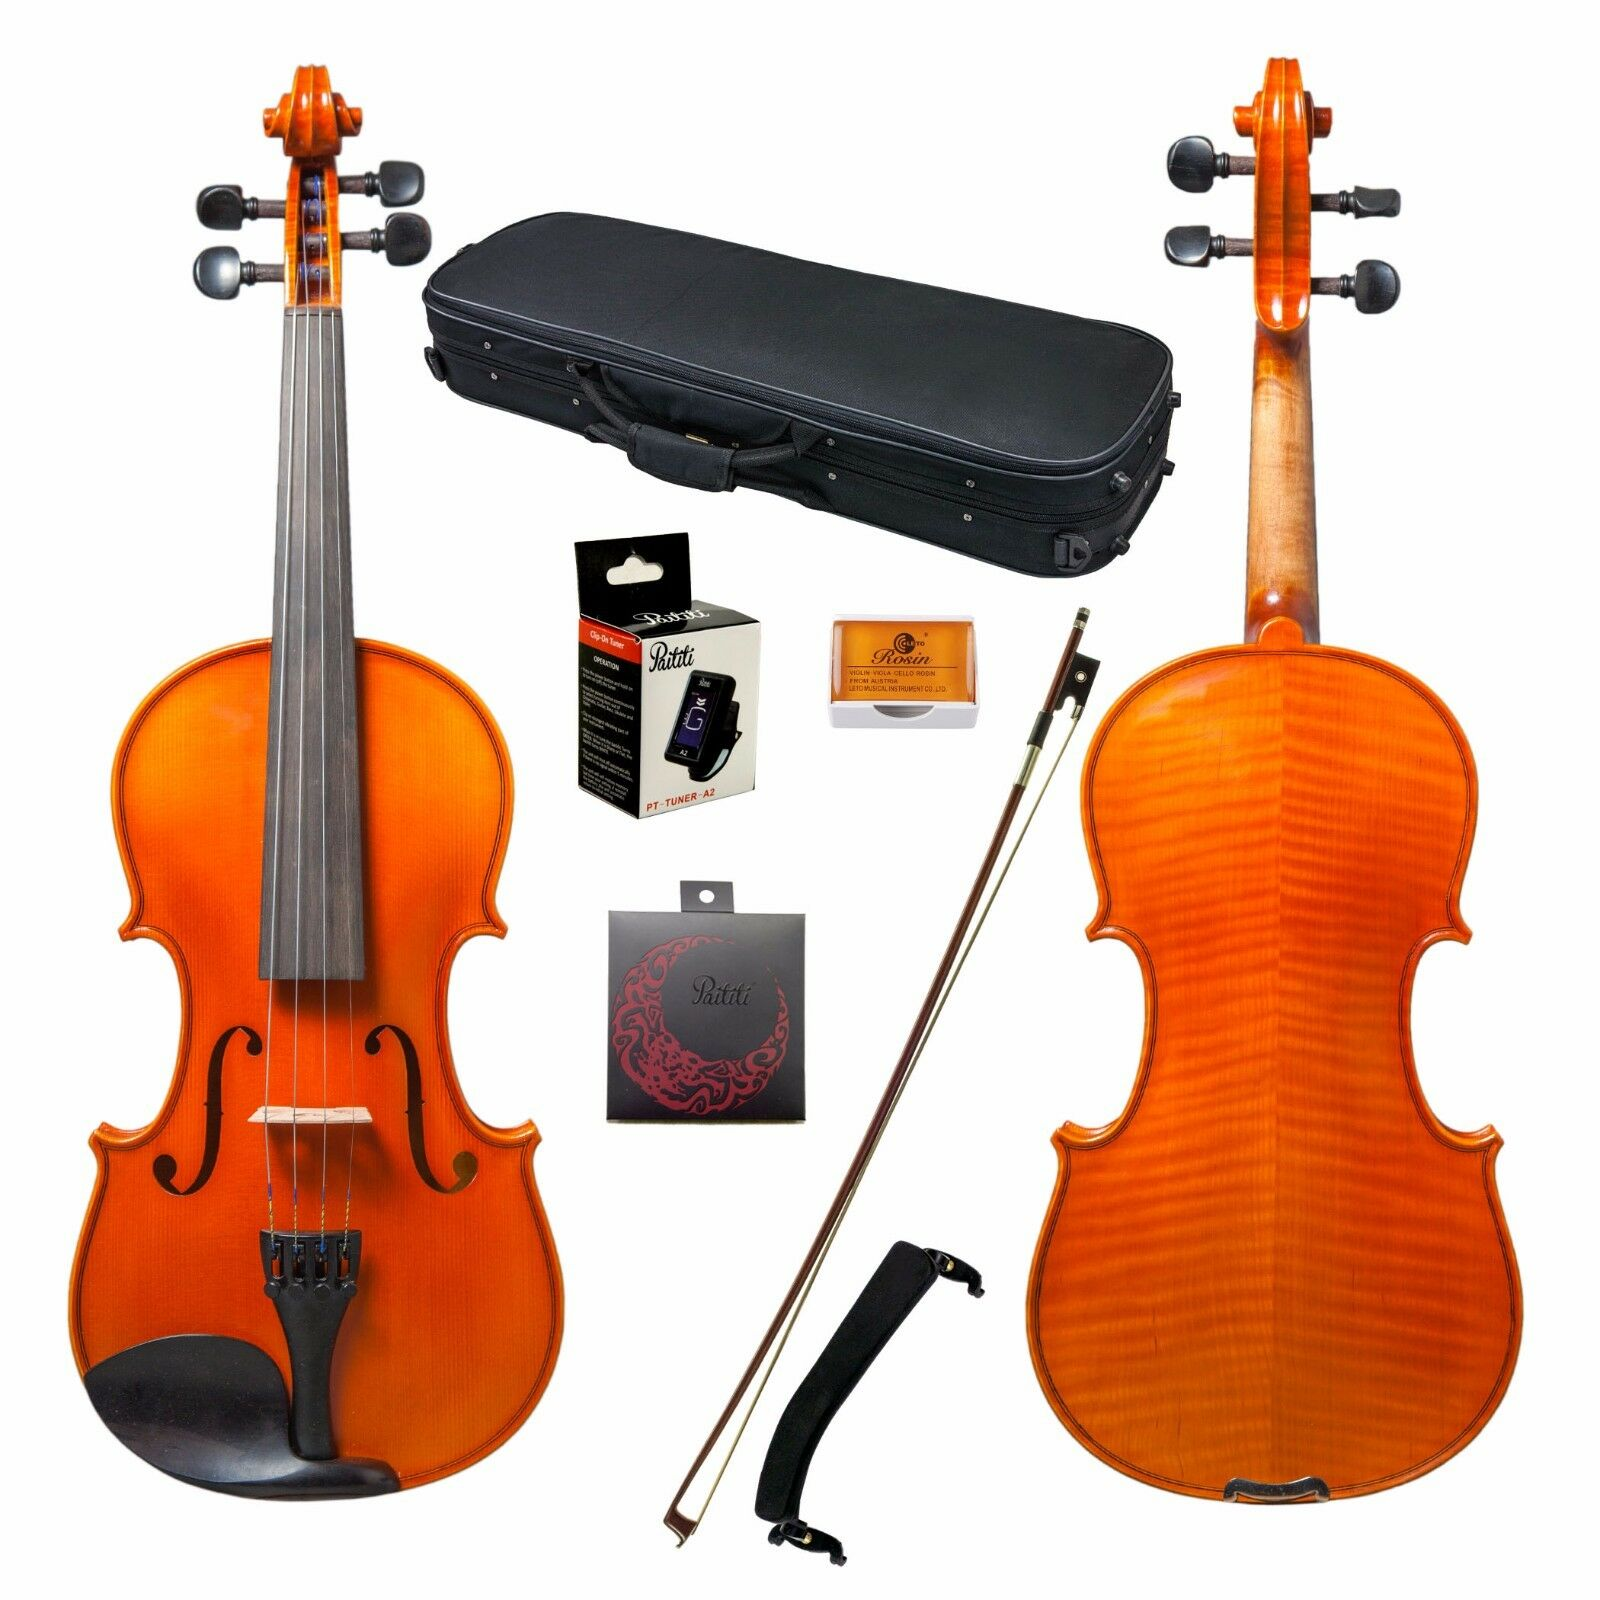 Paititi 4 4 Full Größe Intermediate Level Plus Violin with Case, Bow and More